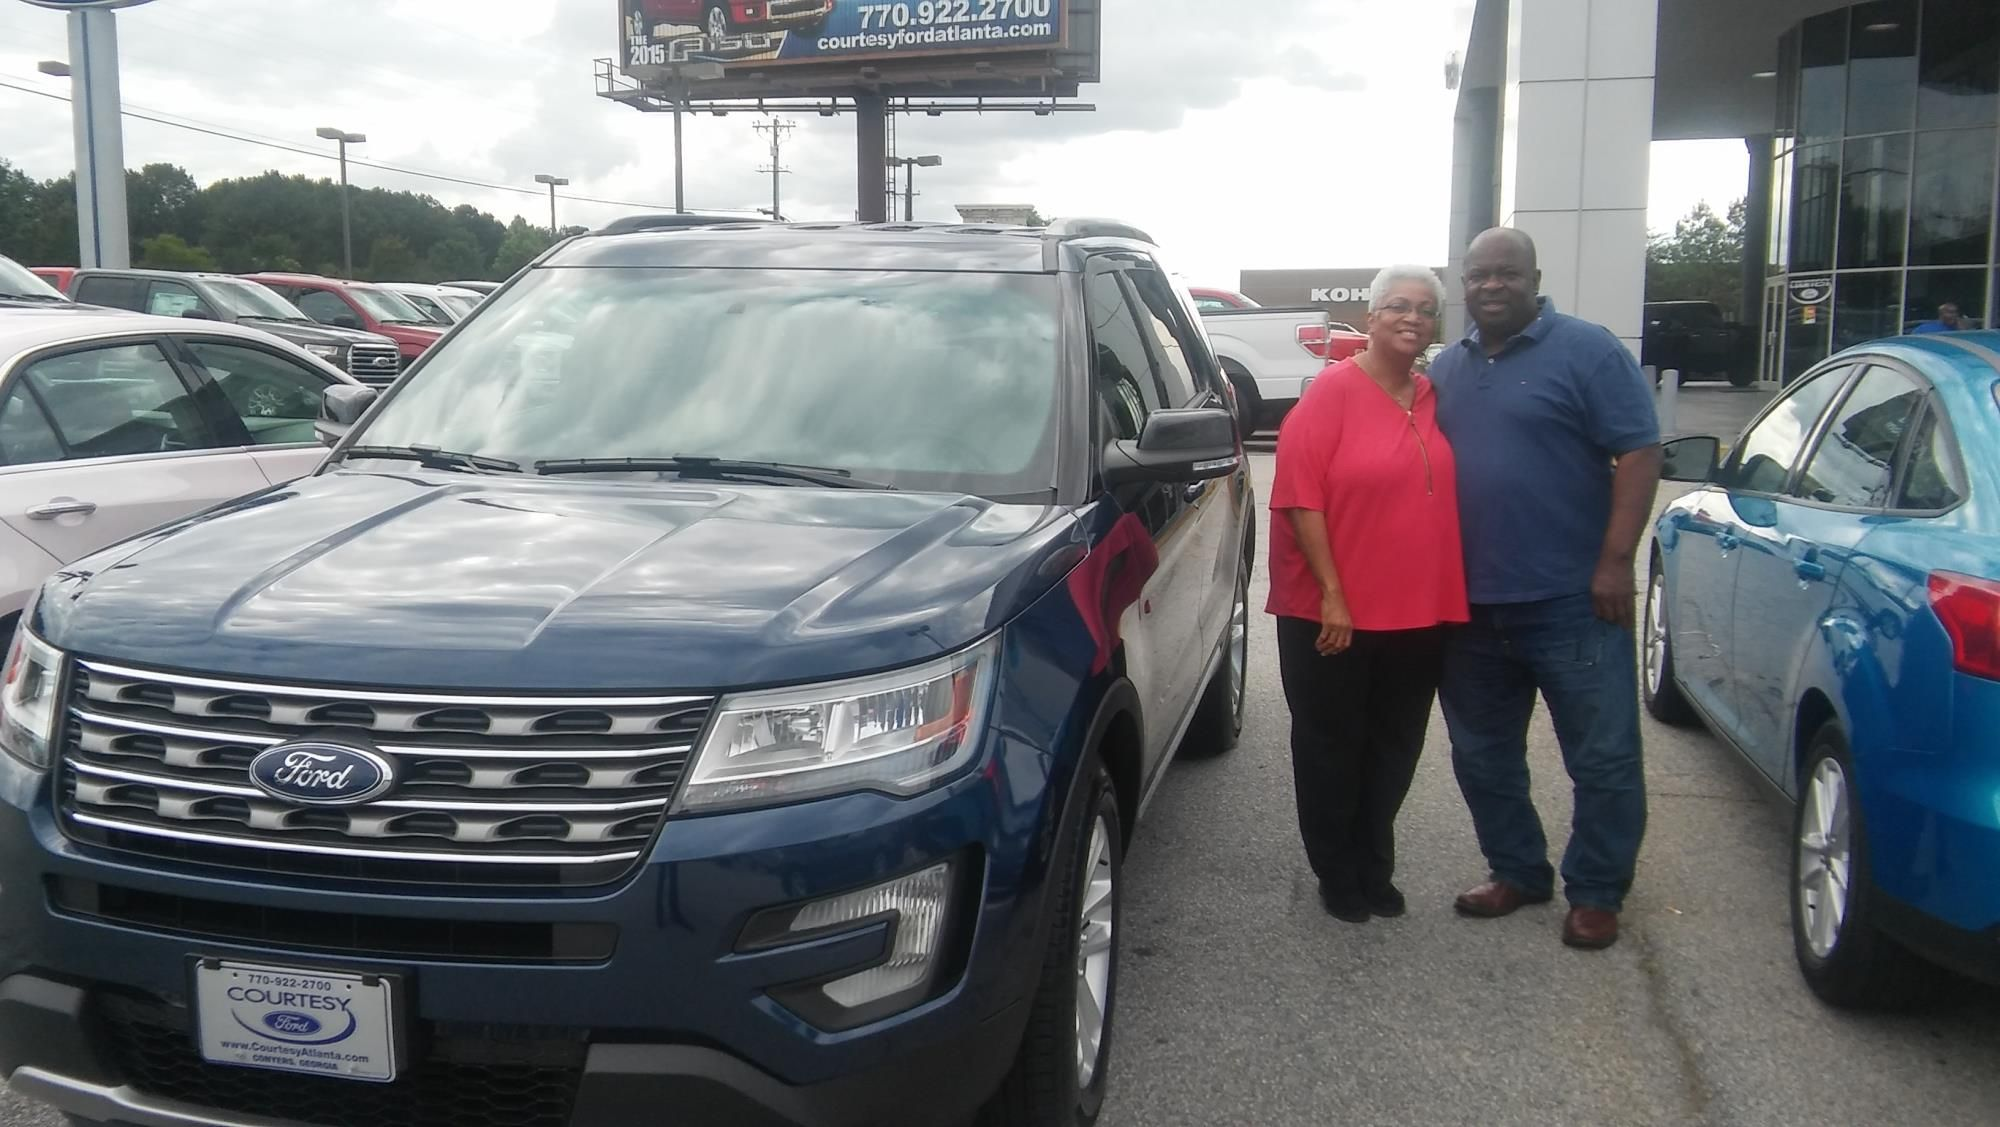 Bernandine King and Dennis King reviews the 2016 Ford Explorer they